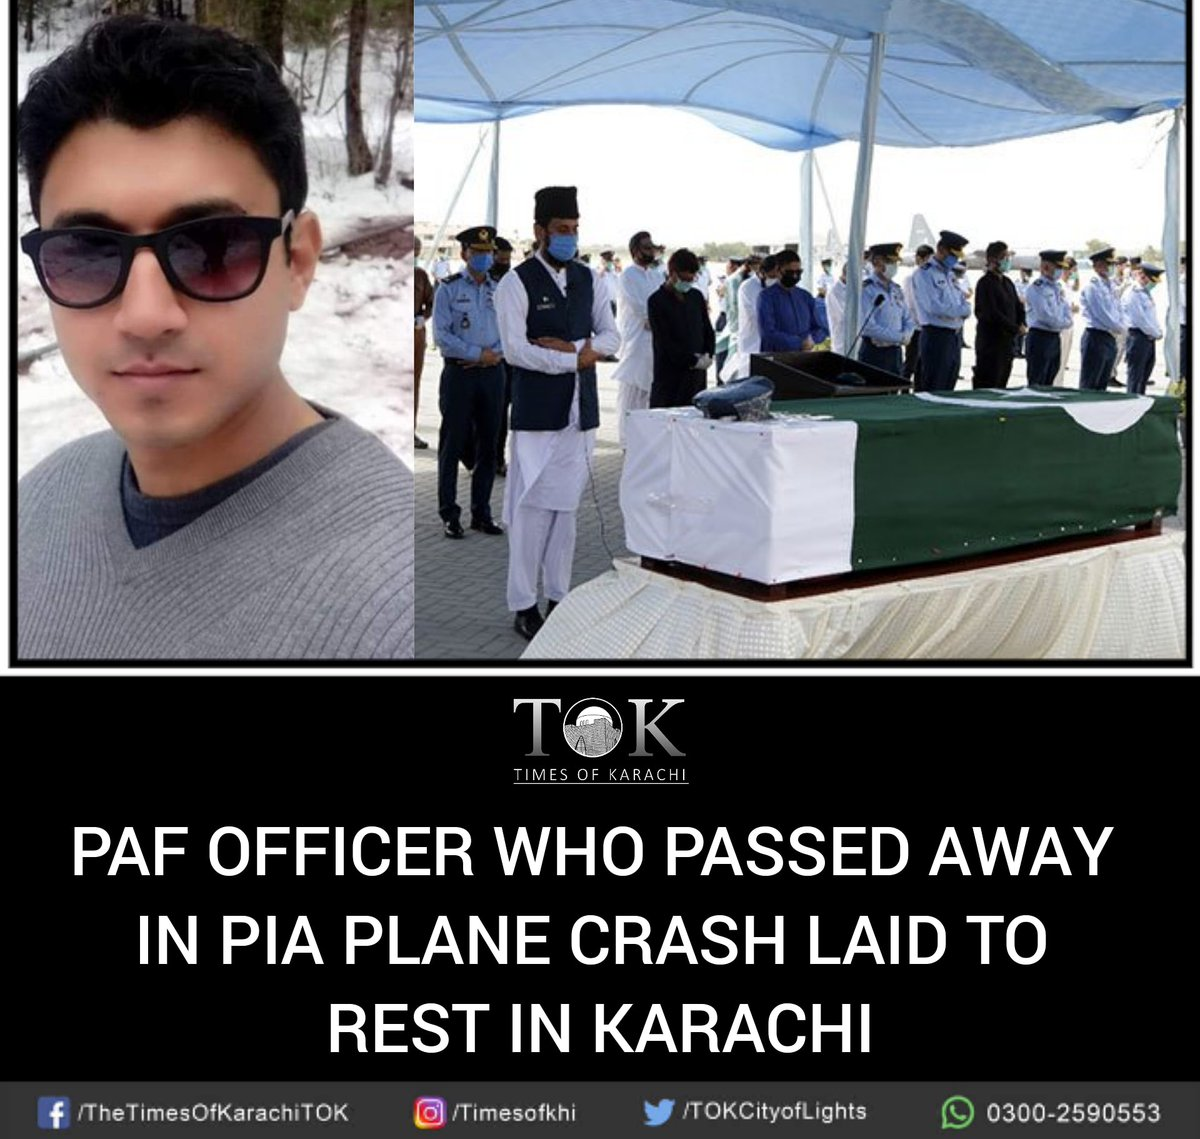 Funeral prayers for Squadron Leader Zain-ul-Arif, who passed away in the #PIAPlaneCrash, were offered at #PAF Base Faisal today - Acc to a statement issued by PAF, Khan was posted at Air HQ Islamabad & was travelling to #Karachi to celebrate Eid-ul-Fitr with his parents. pic.twitter.com/U8feiWD68a